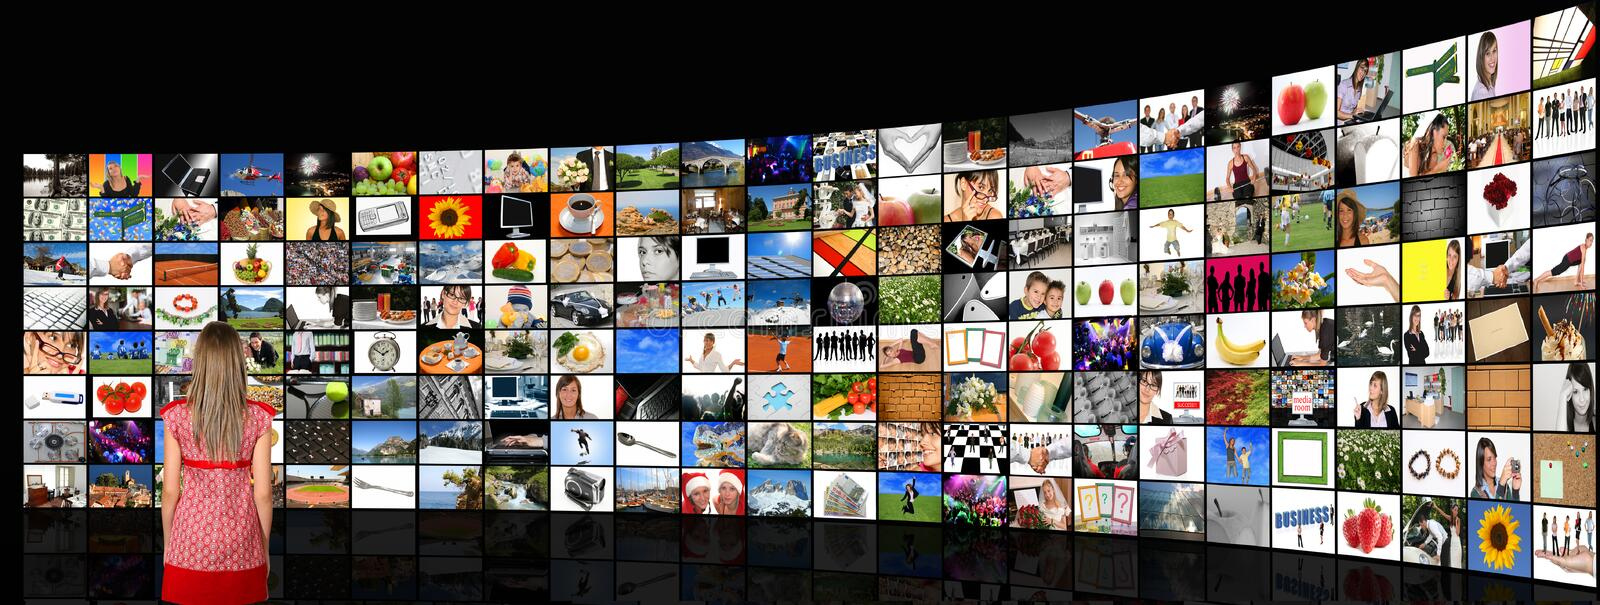 Media room royalty free stock photography